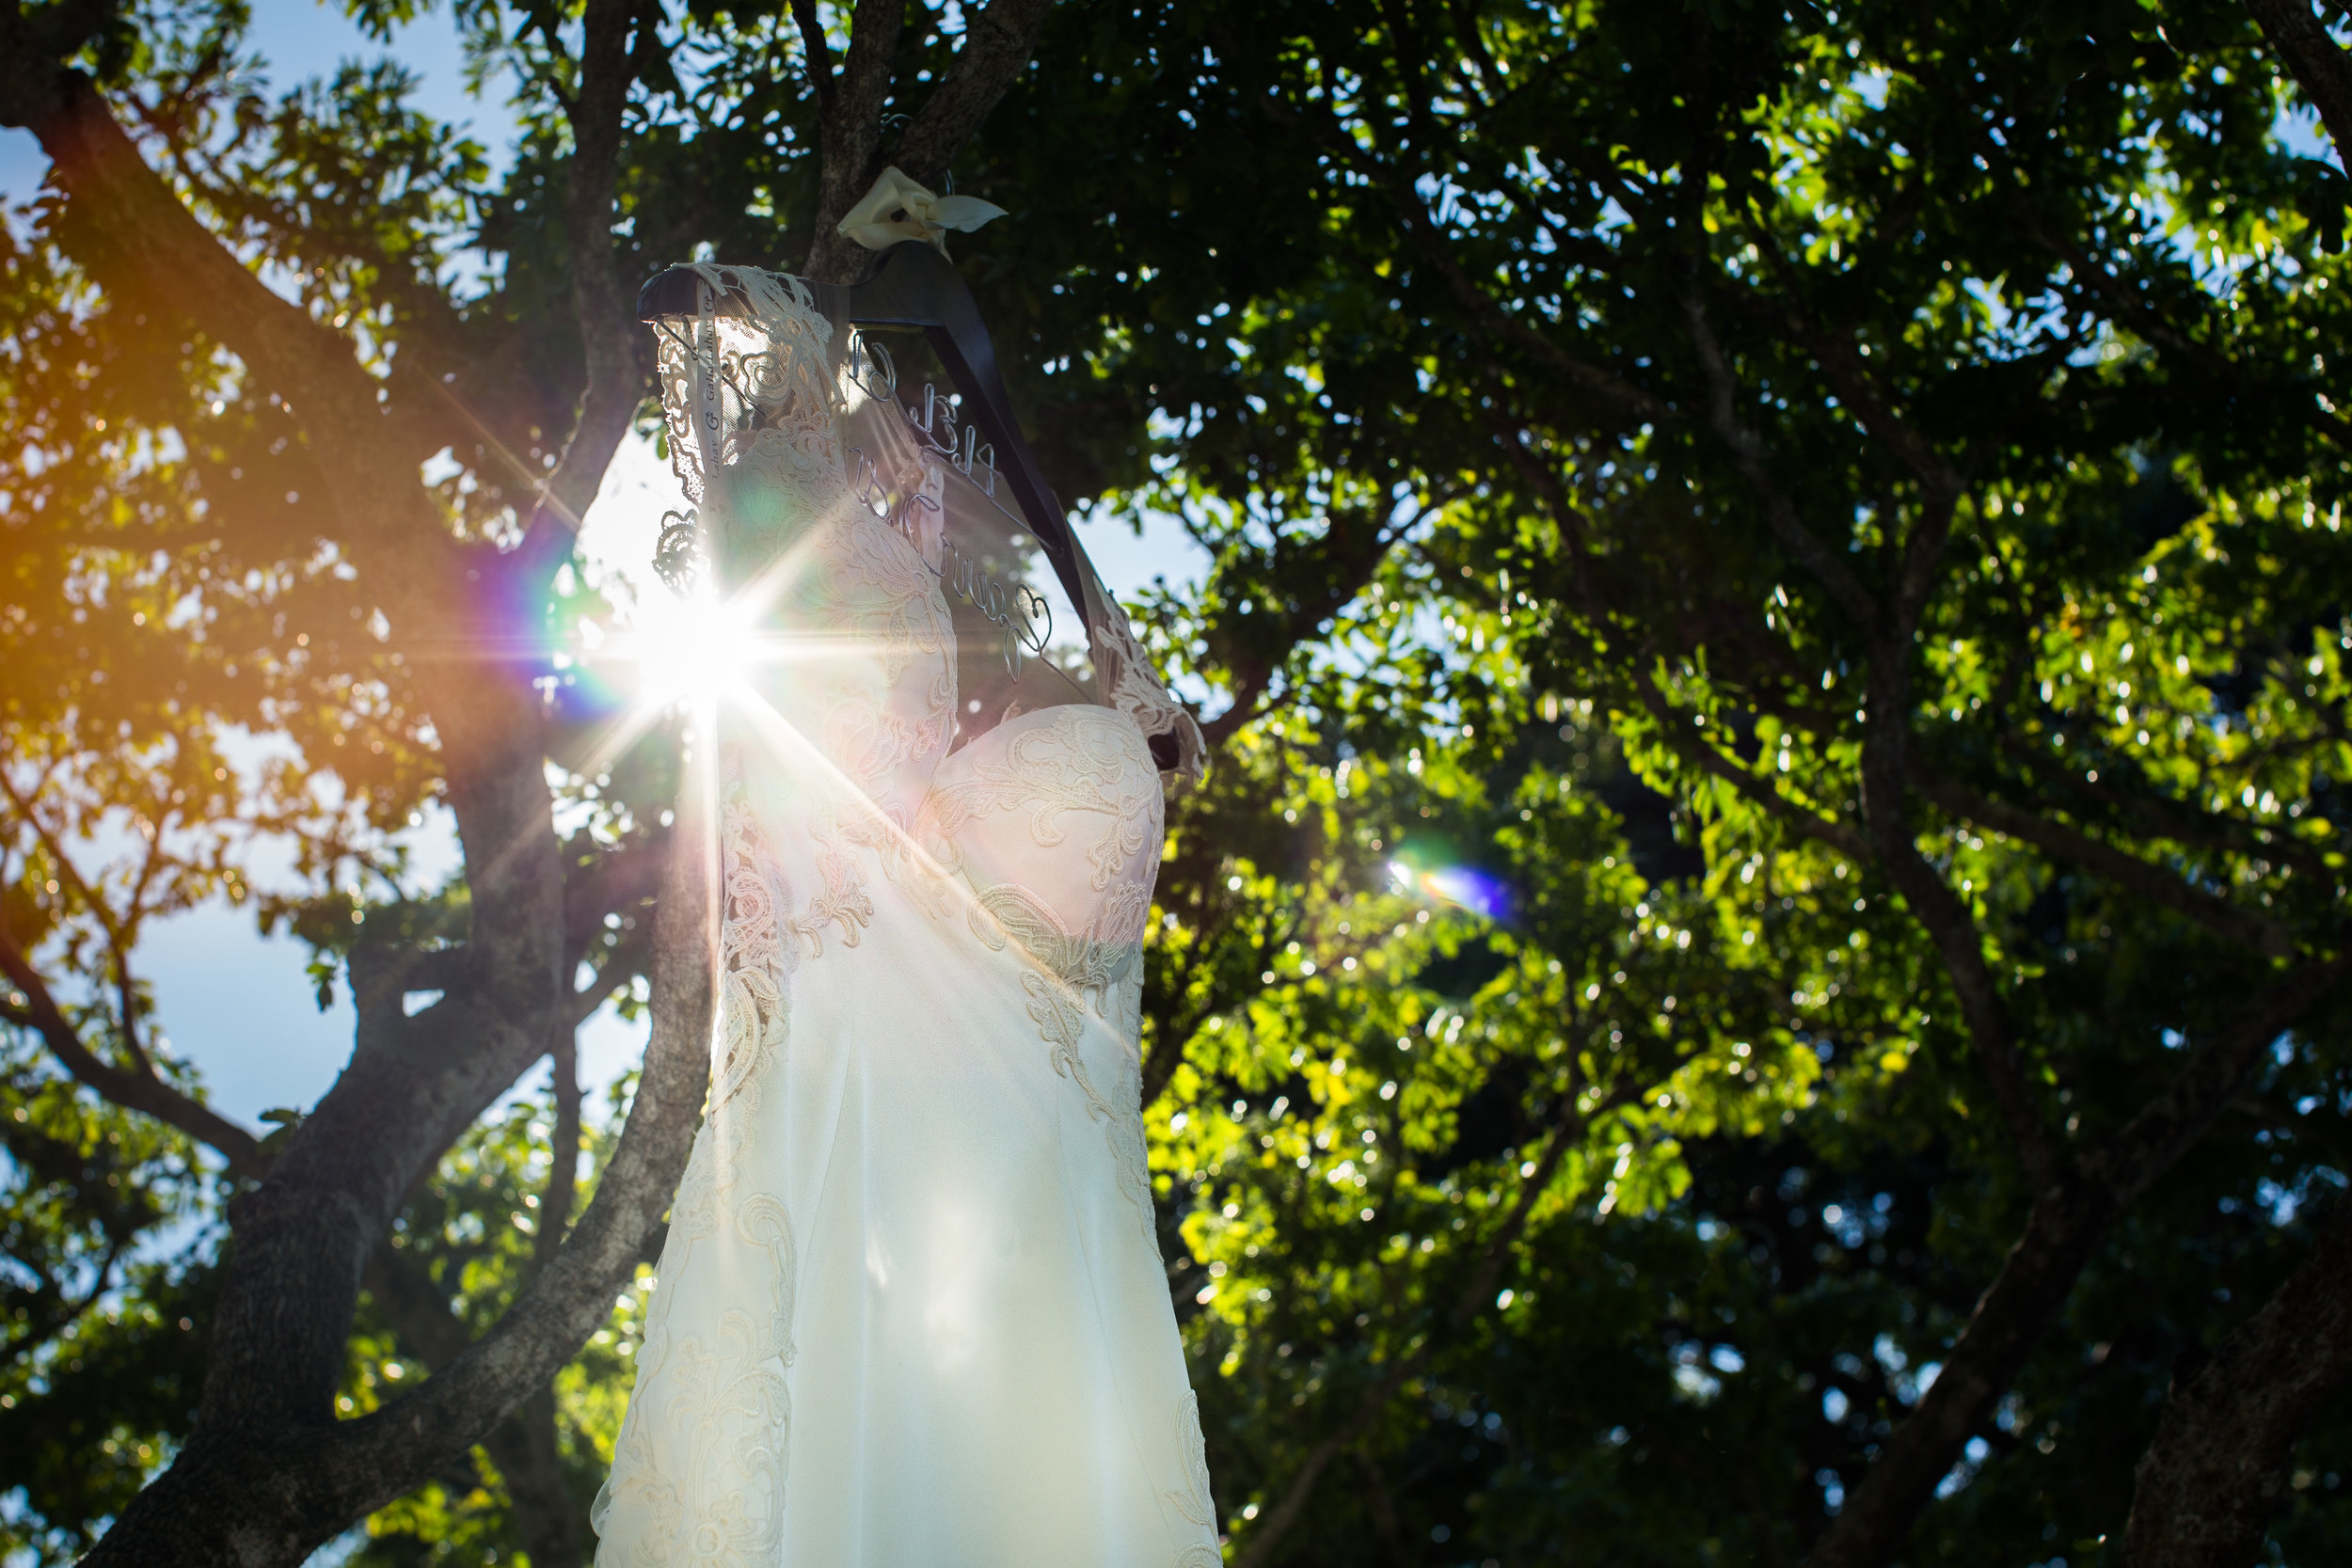 Dress-Hanging-In-Tree-With-Sunburst.jpg